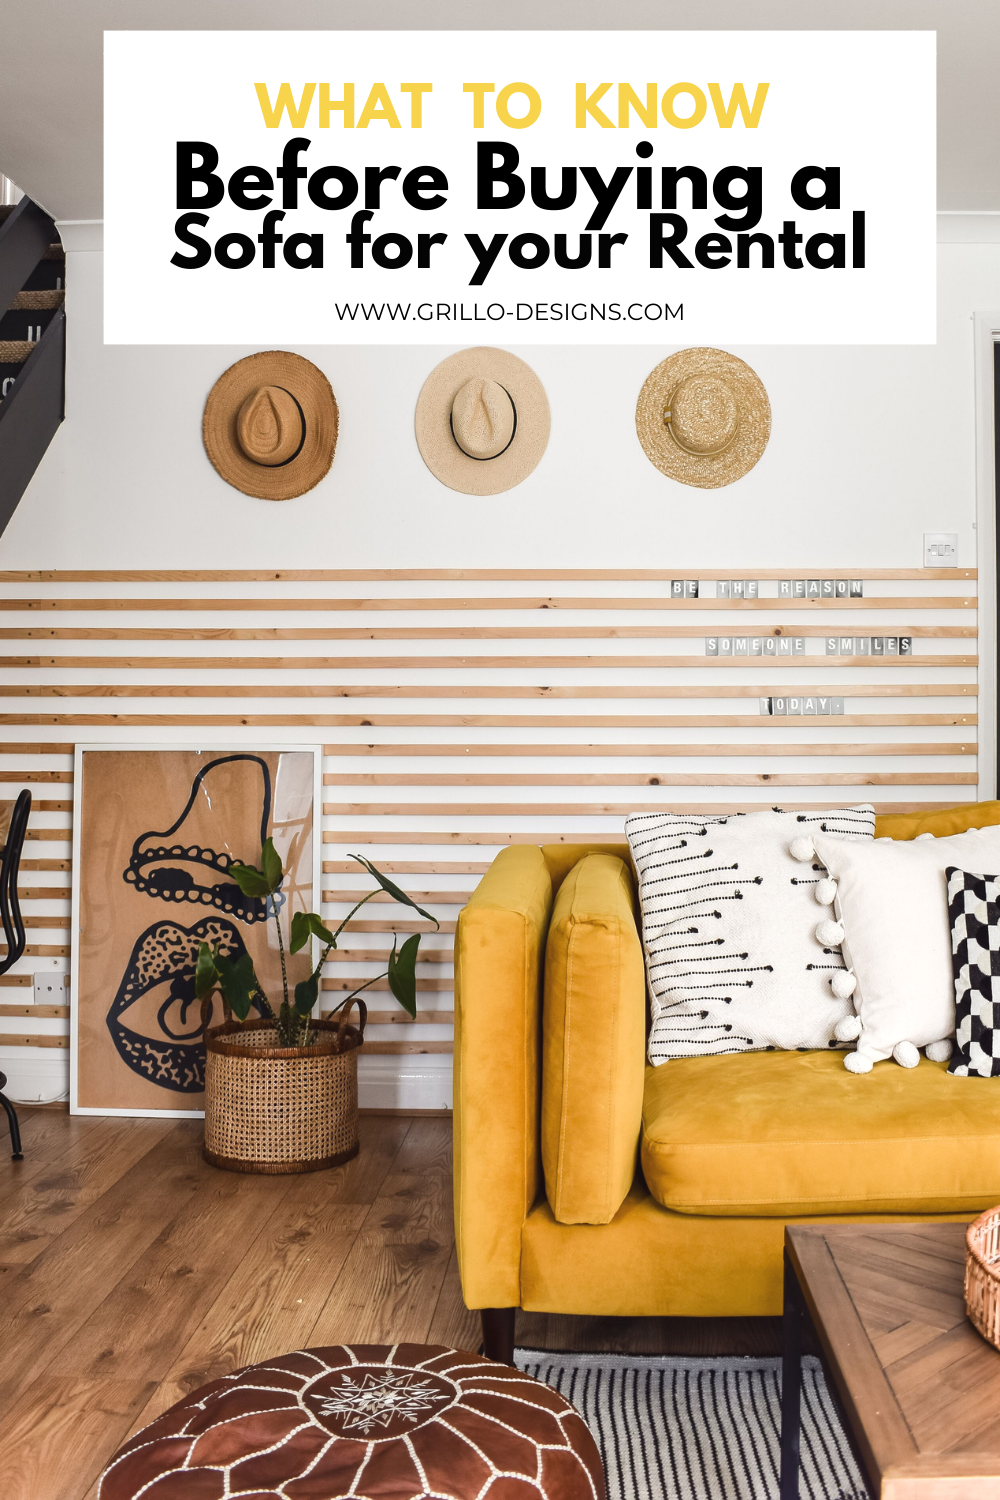 What you need to know before buying a sofa for your rental